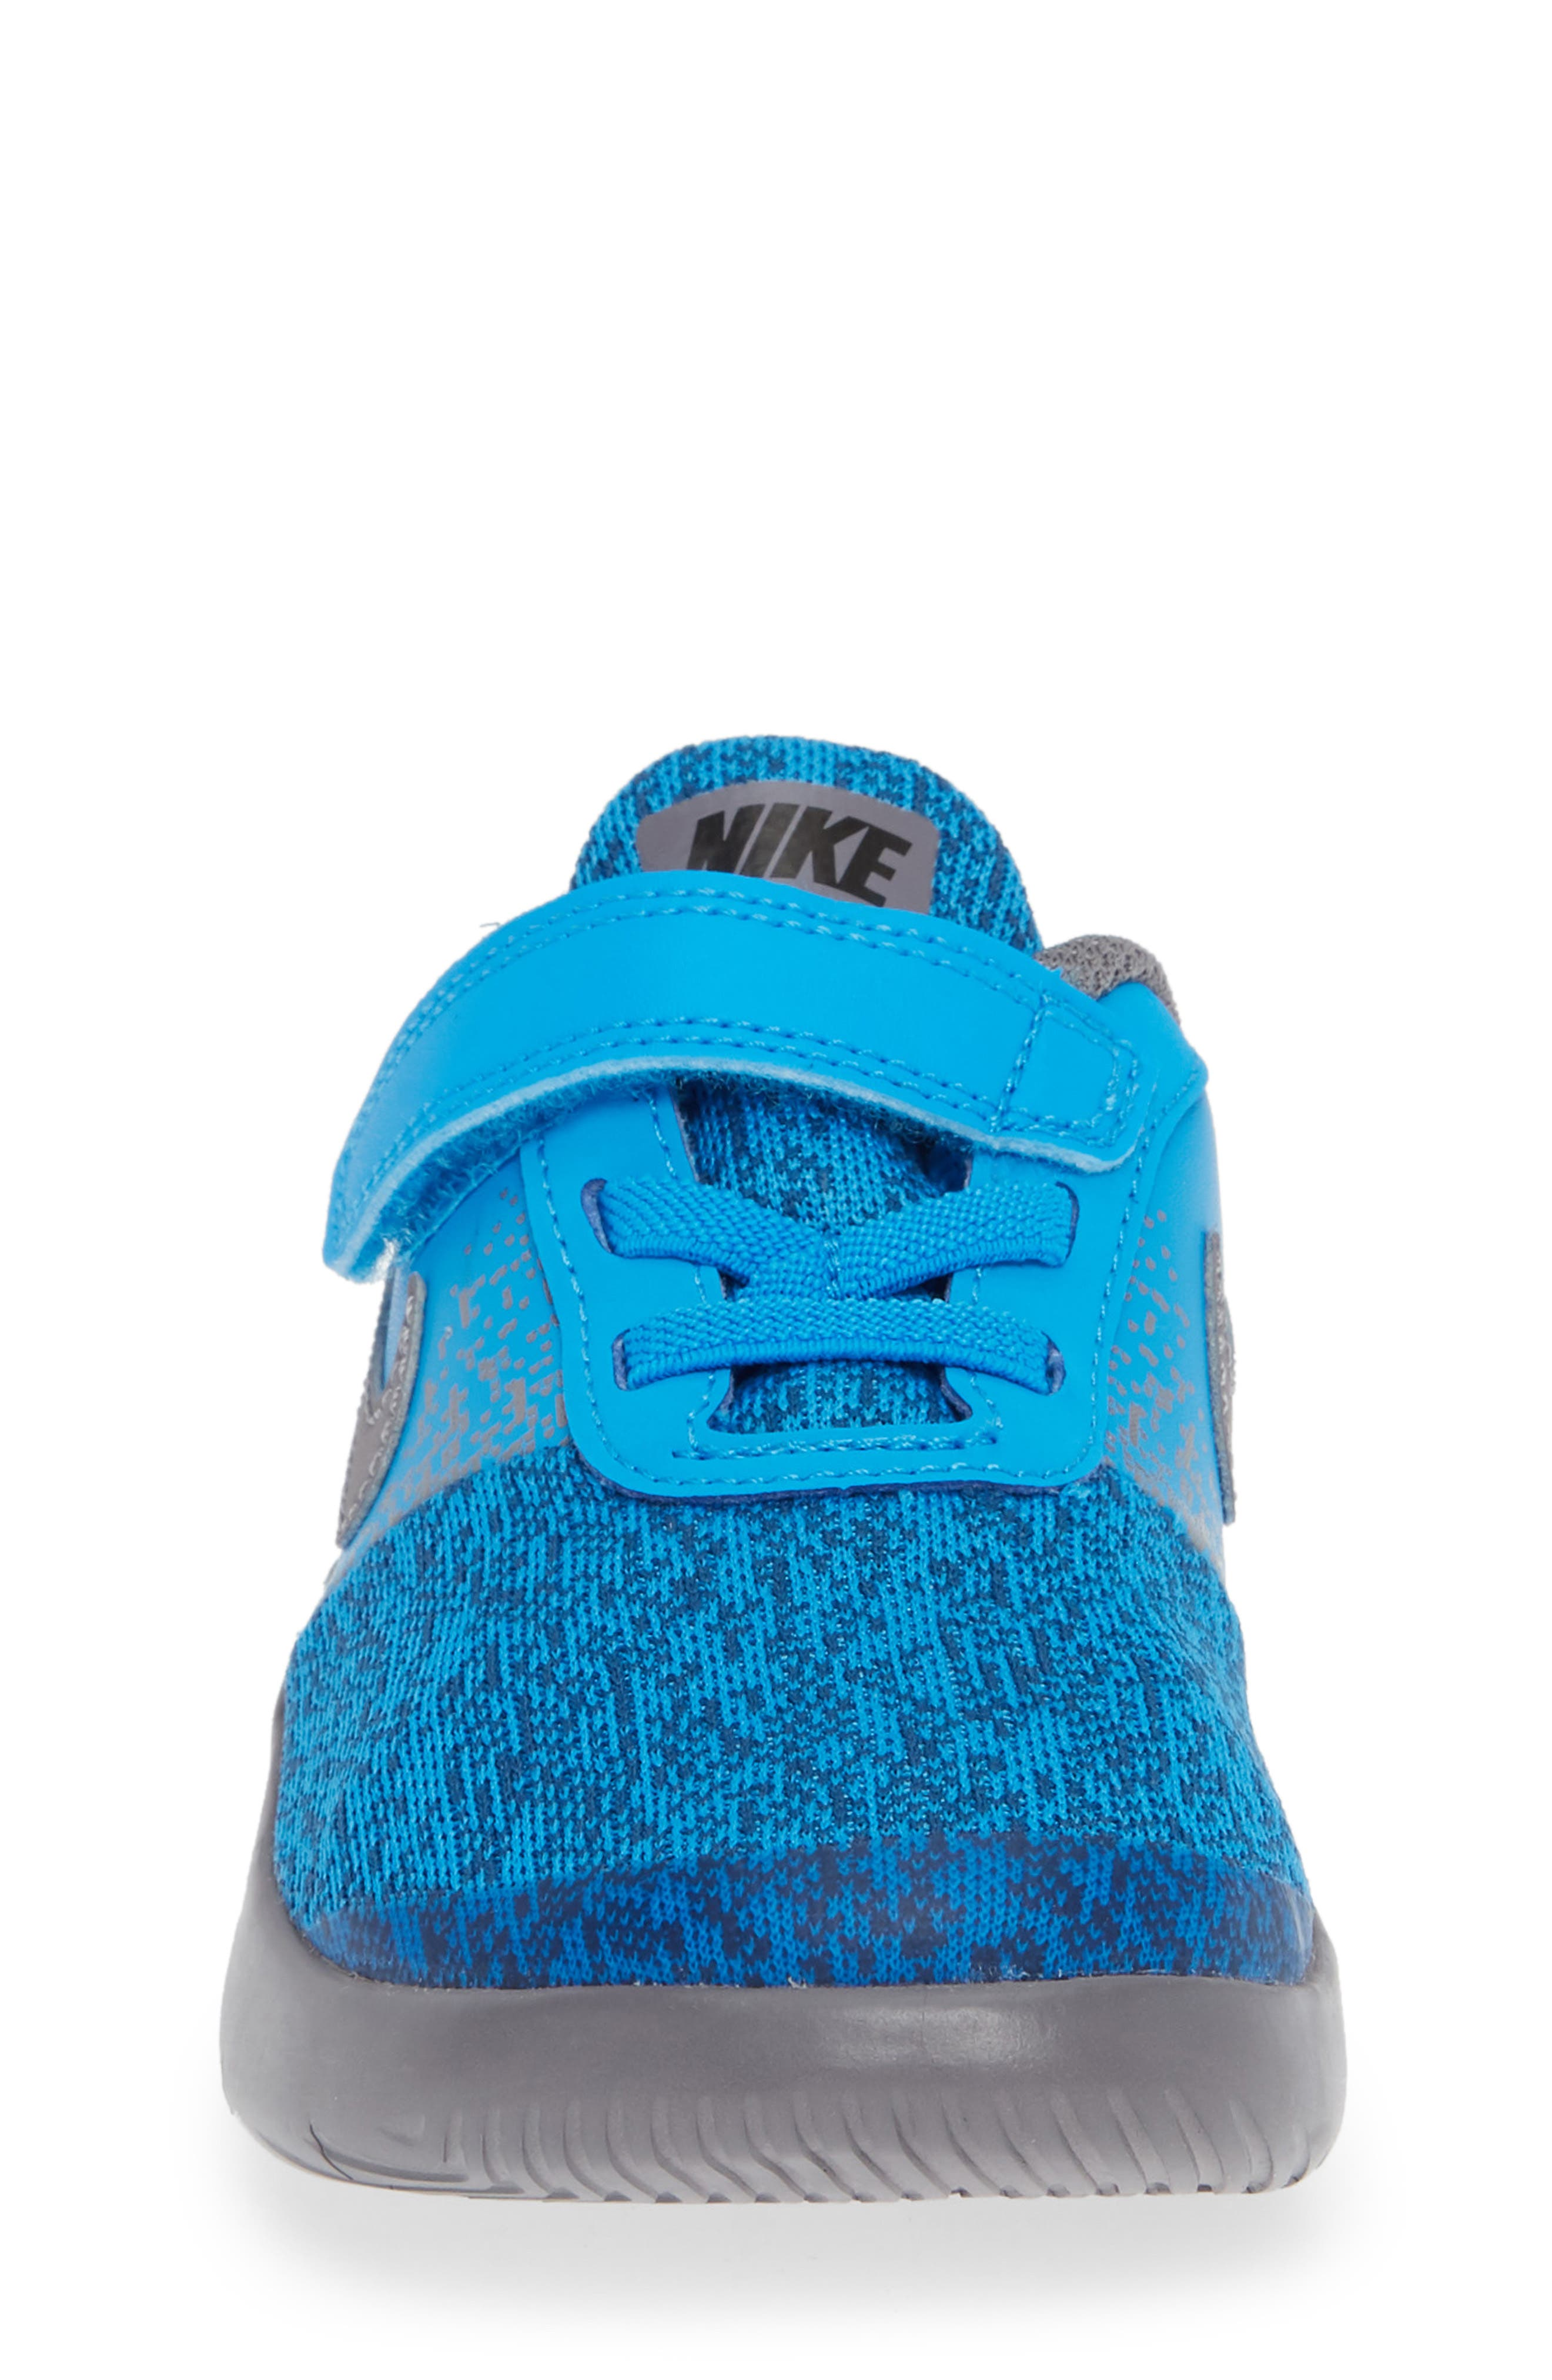 Flex Contact Running Shoe,                             Alternate thumbnail 4, color,                             BLUE HERO/ GUNSMOKE/ GREEN